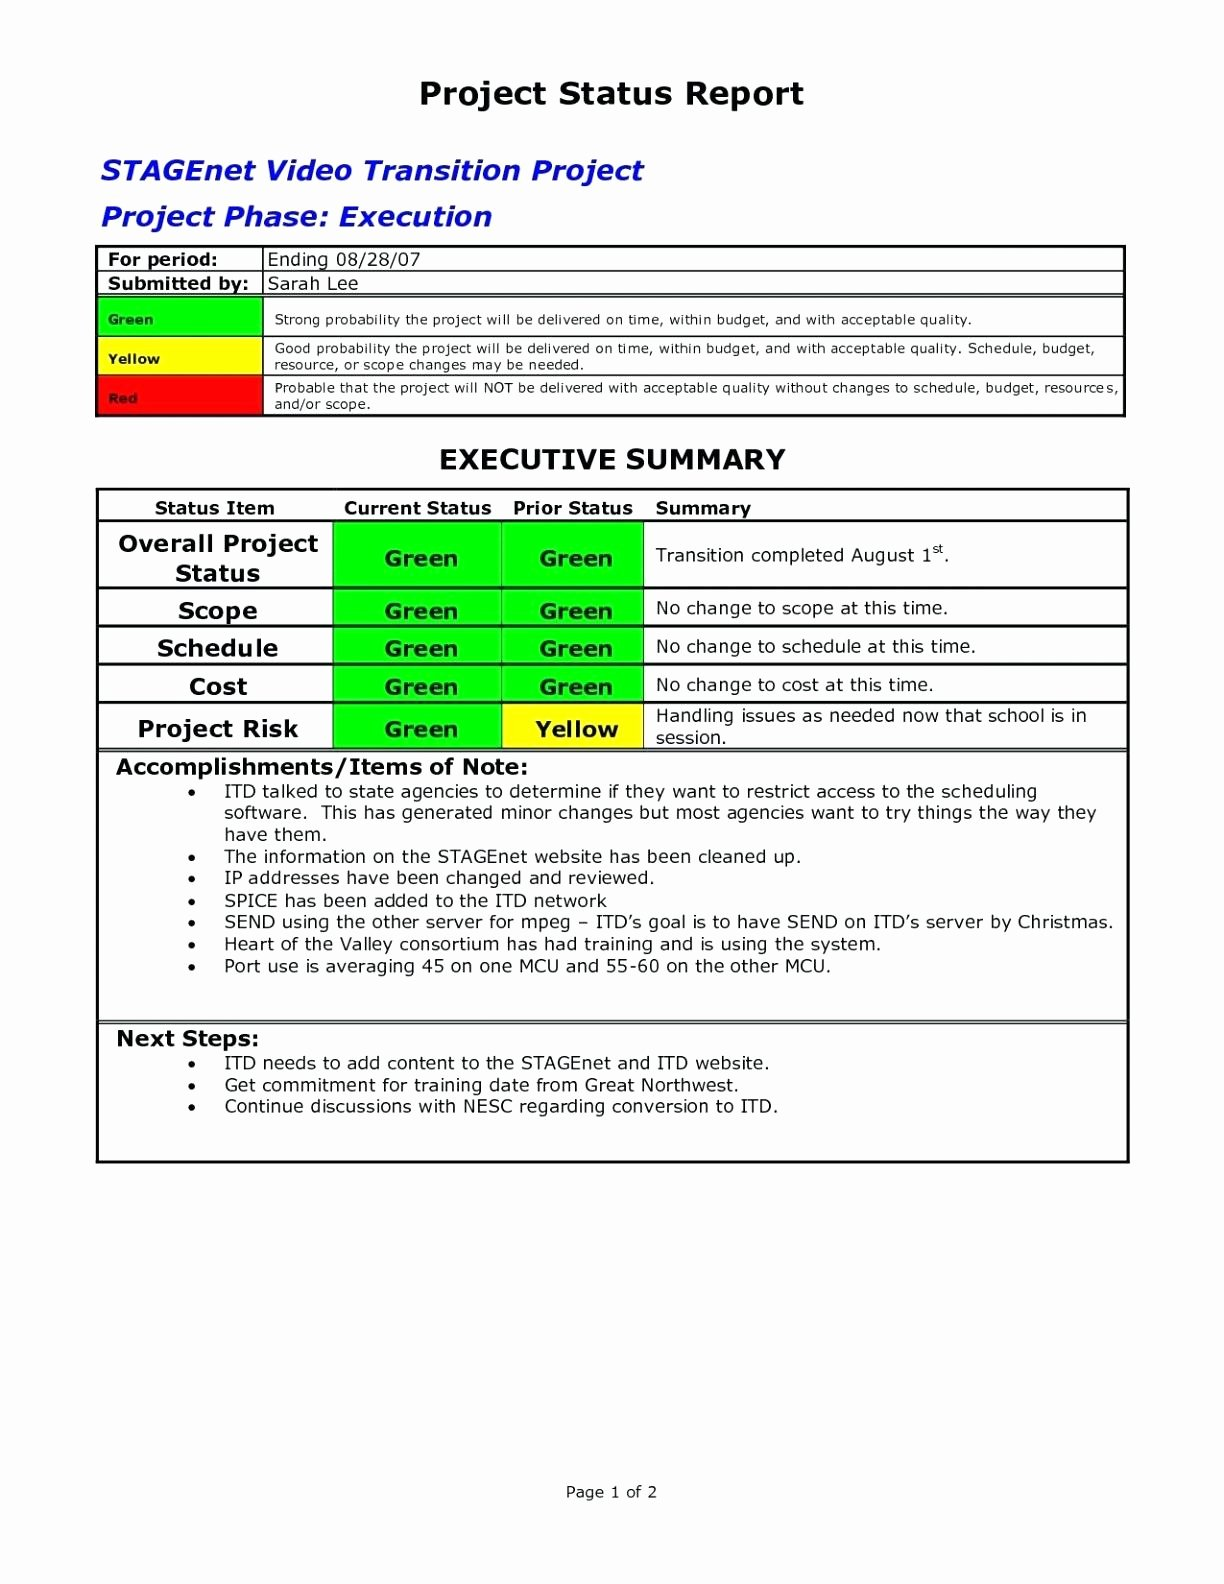 Project Status Report Template Excel Elegant Template Customer Status Report Template Monthly Project